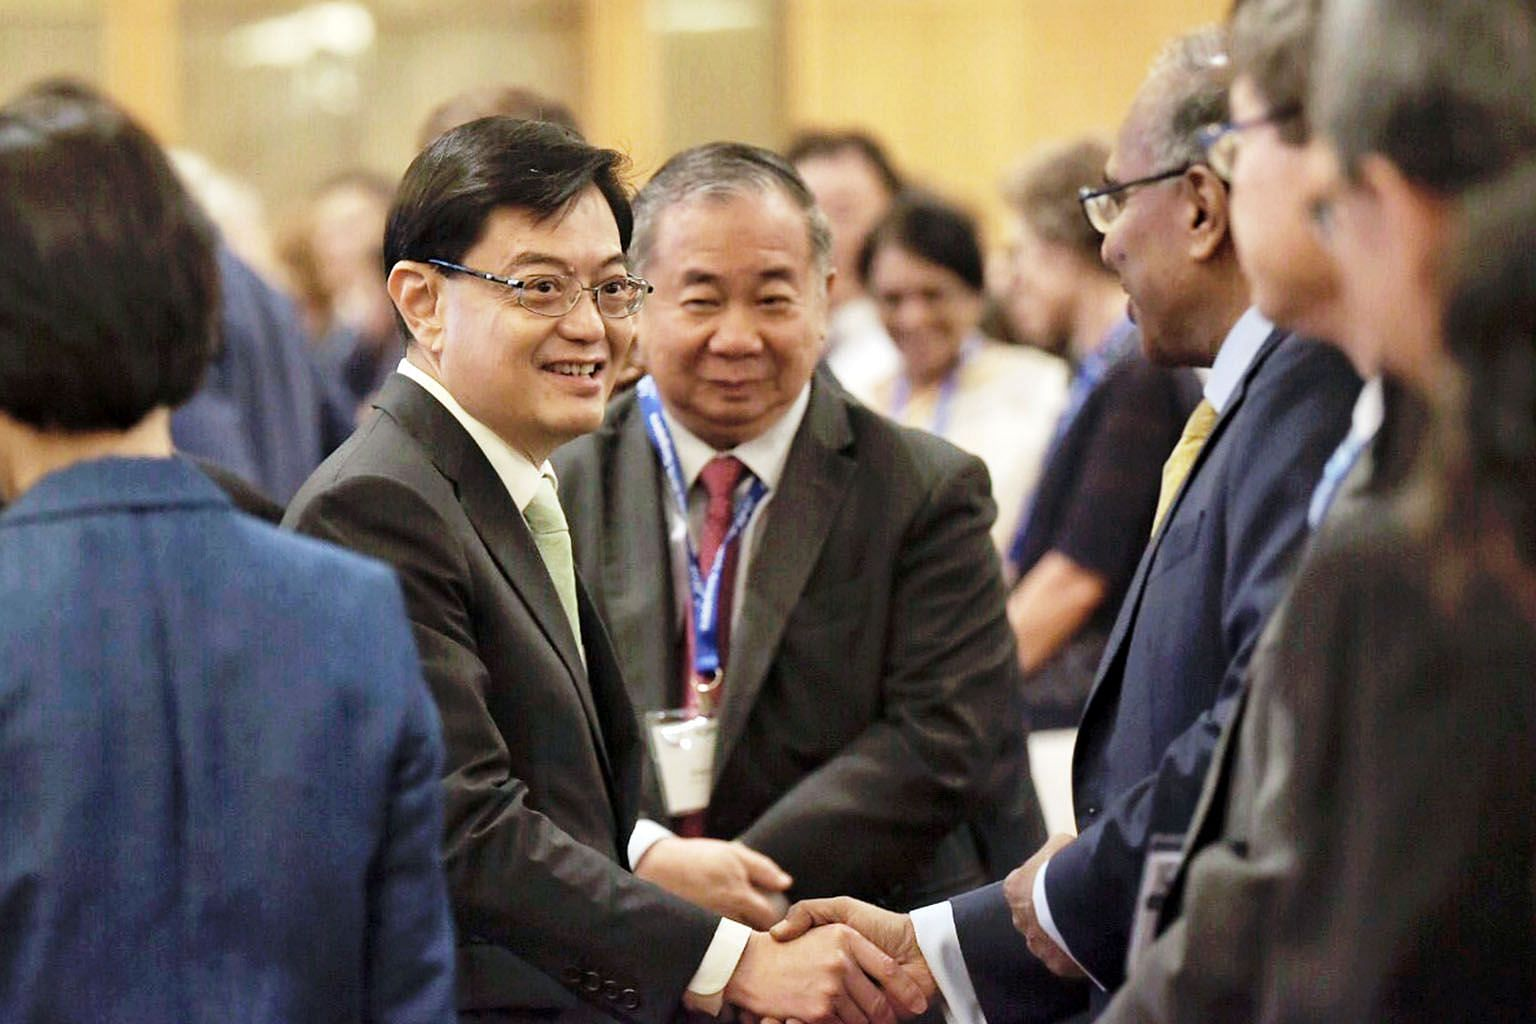 Deputy Prime Minister Heng Swee Keat meeting delegates at the 10th International Conference on Materials for Advanced Technologies at Marina Bay Sands yesterday. He said that as a result of Singapore investing in science and technology R&D since almo